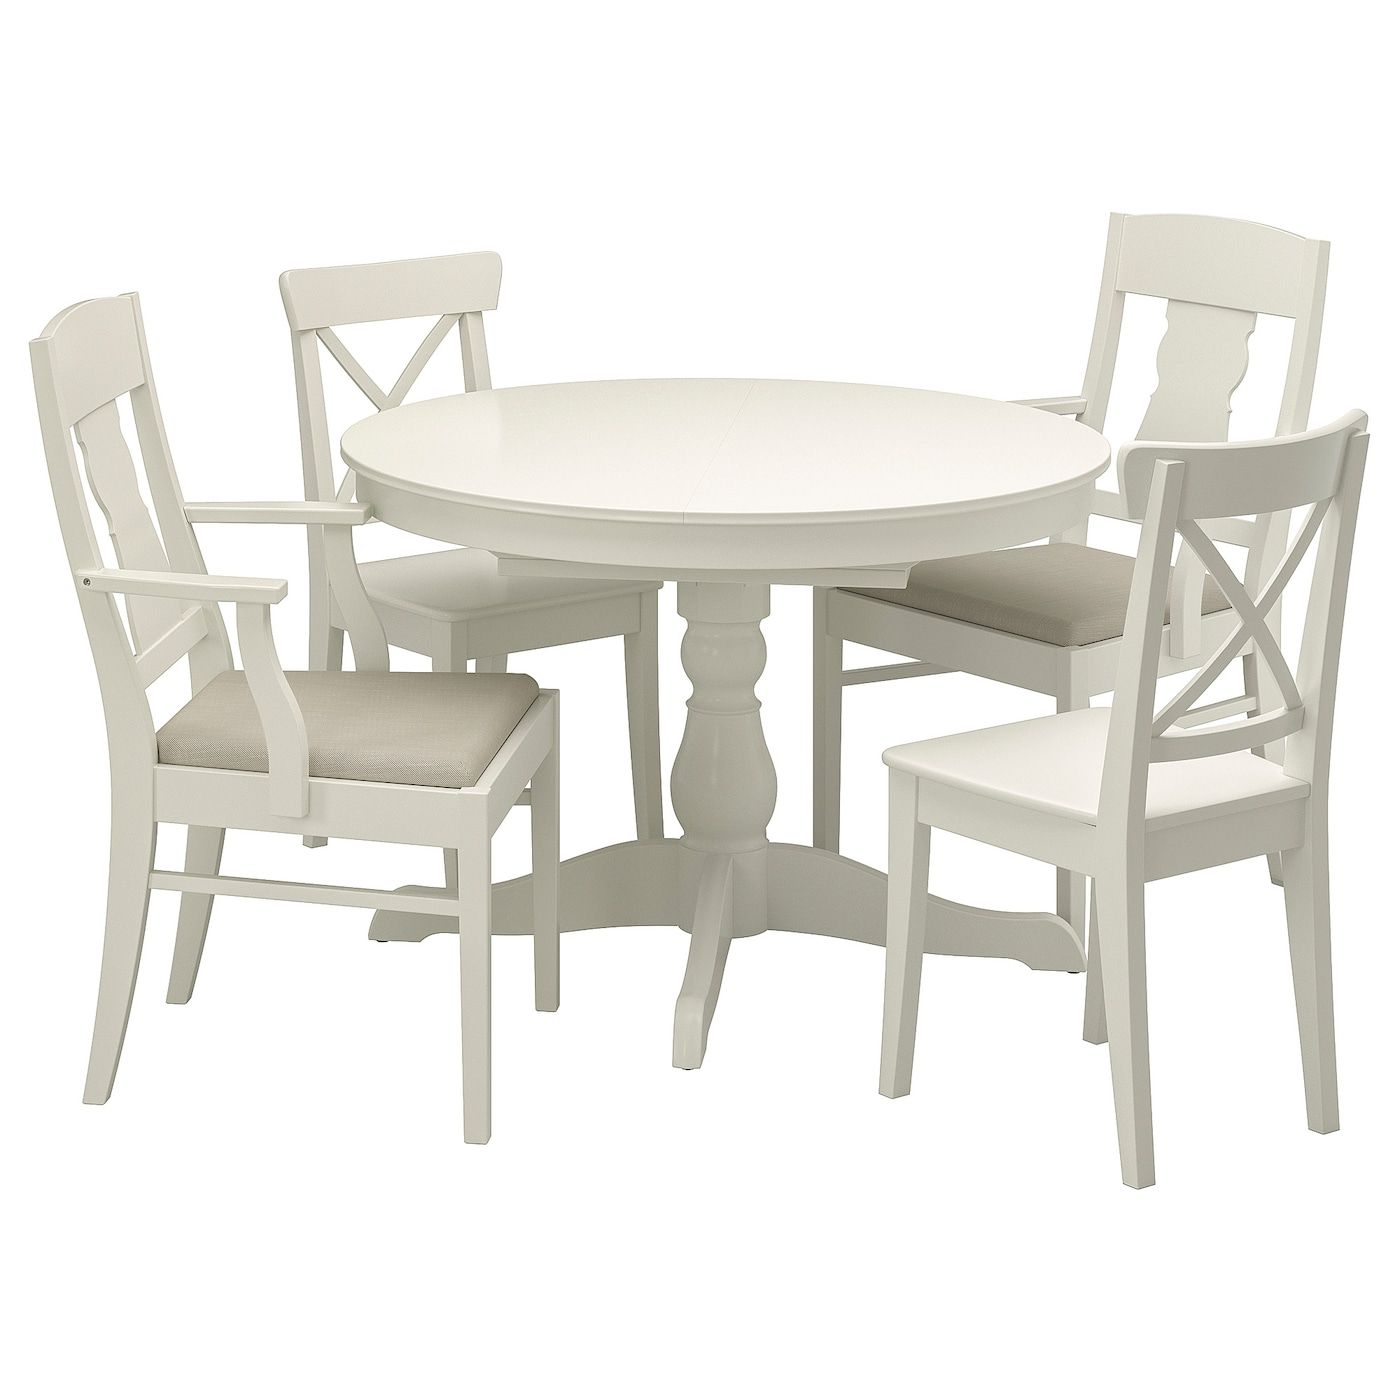 Ingatorp Ingolf Table And 4 Chairs White Nordvalla Beige 43 1